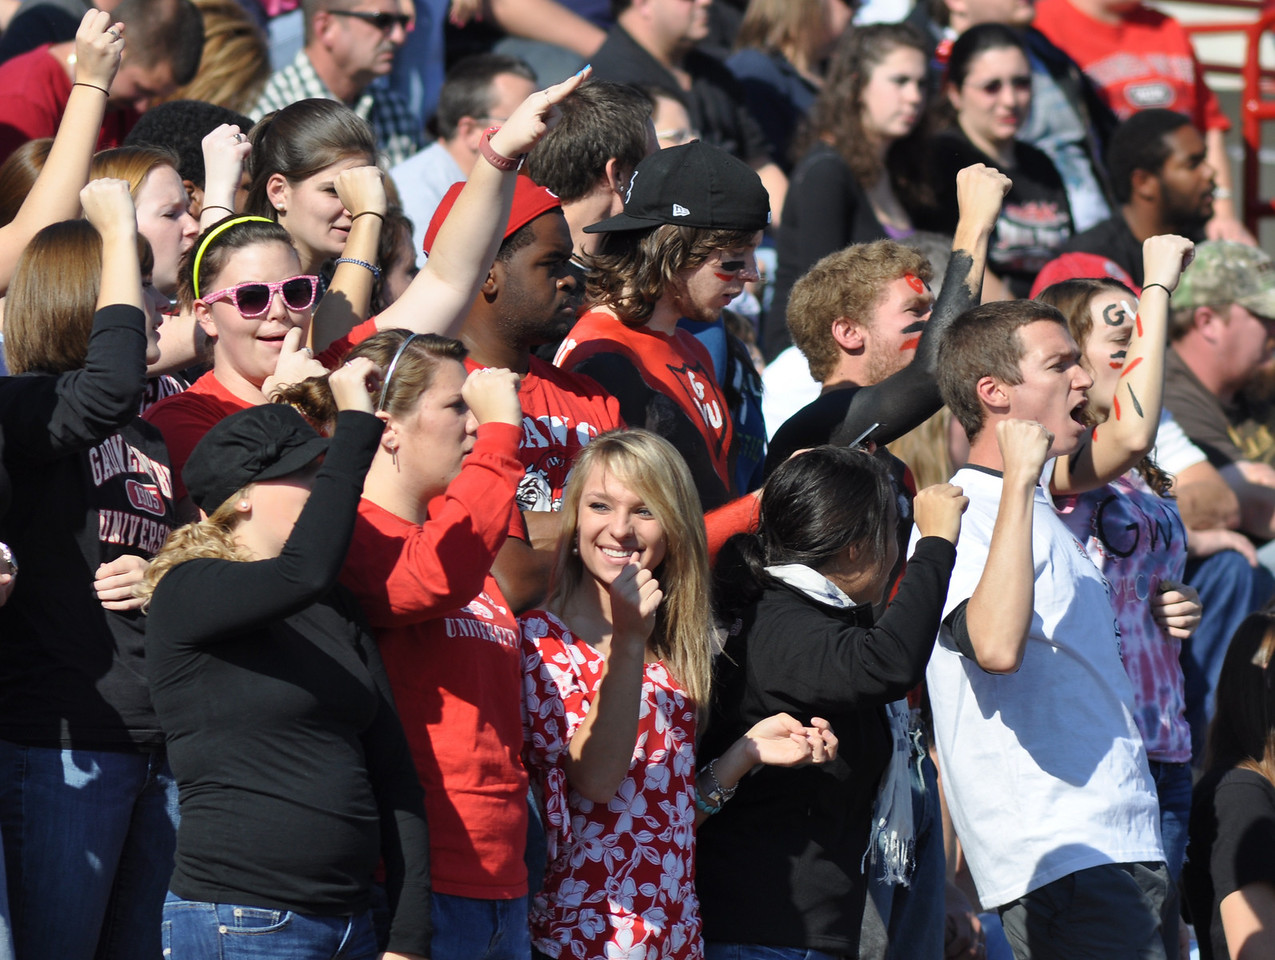 The Gardner-Webb Bulldogs finish the 2010 season with a 10-7 victory over VMI on November 20, 2010 for their senior day.